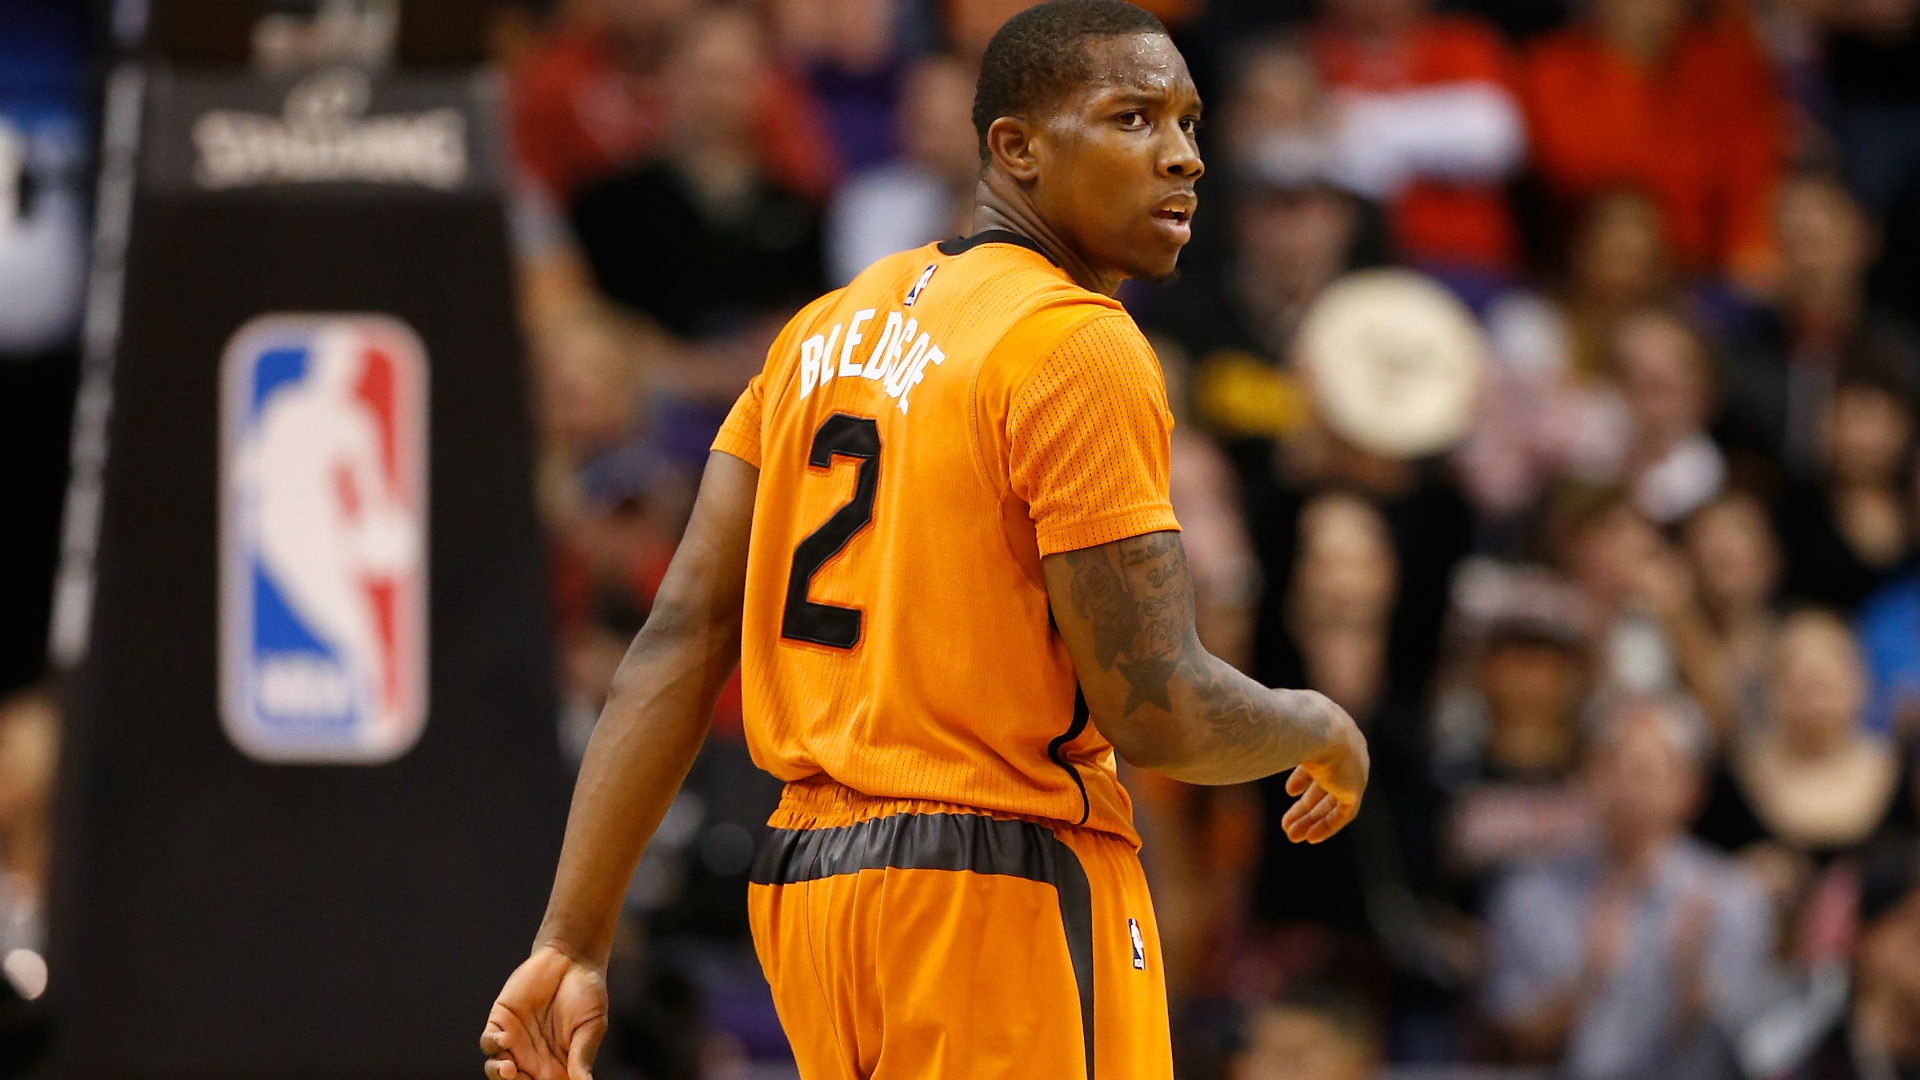 Eric-Bledsoe-2615-getty-ftr.jpg